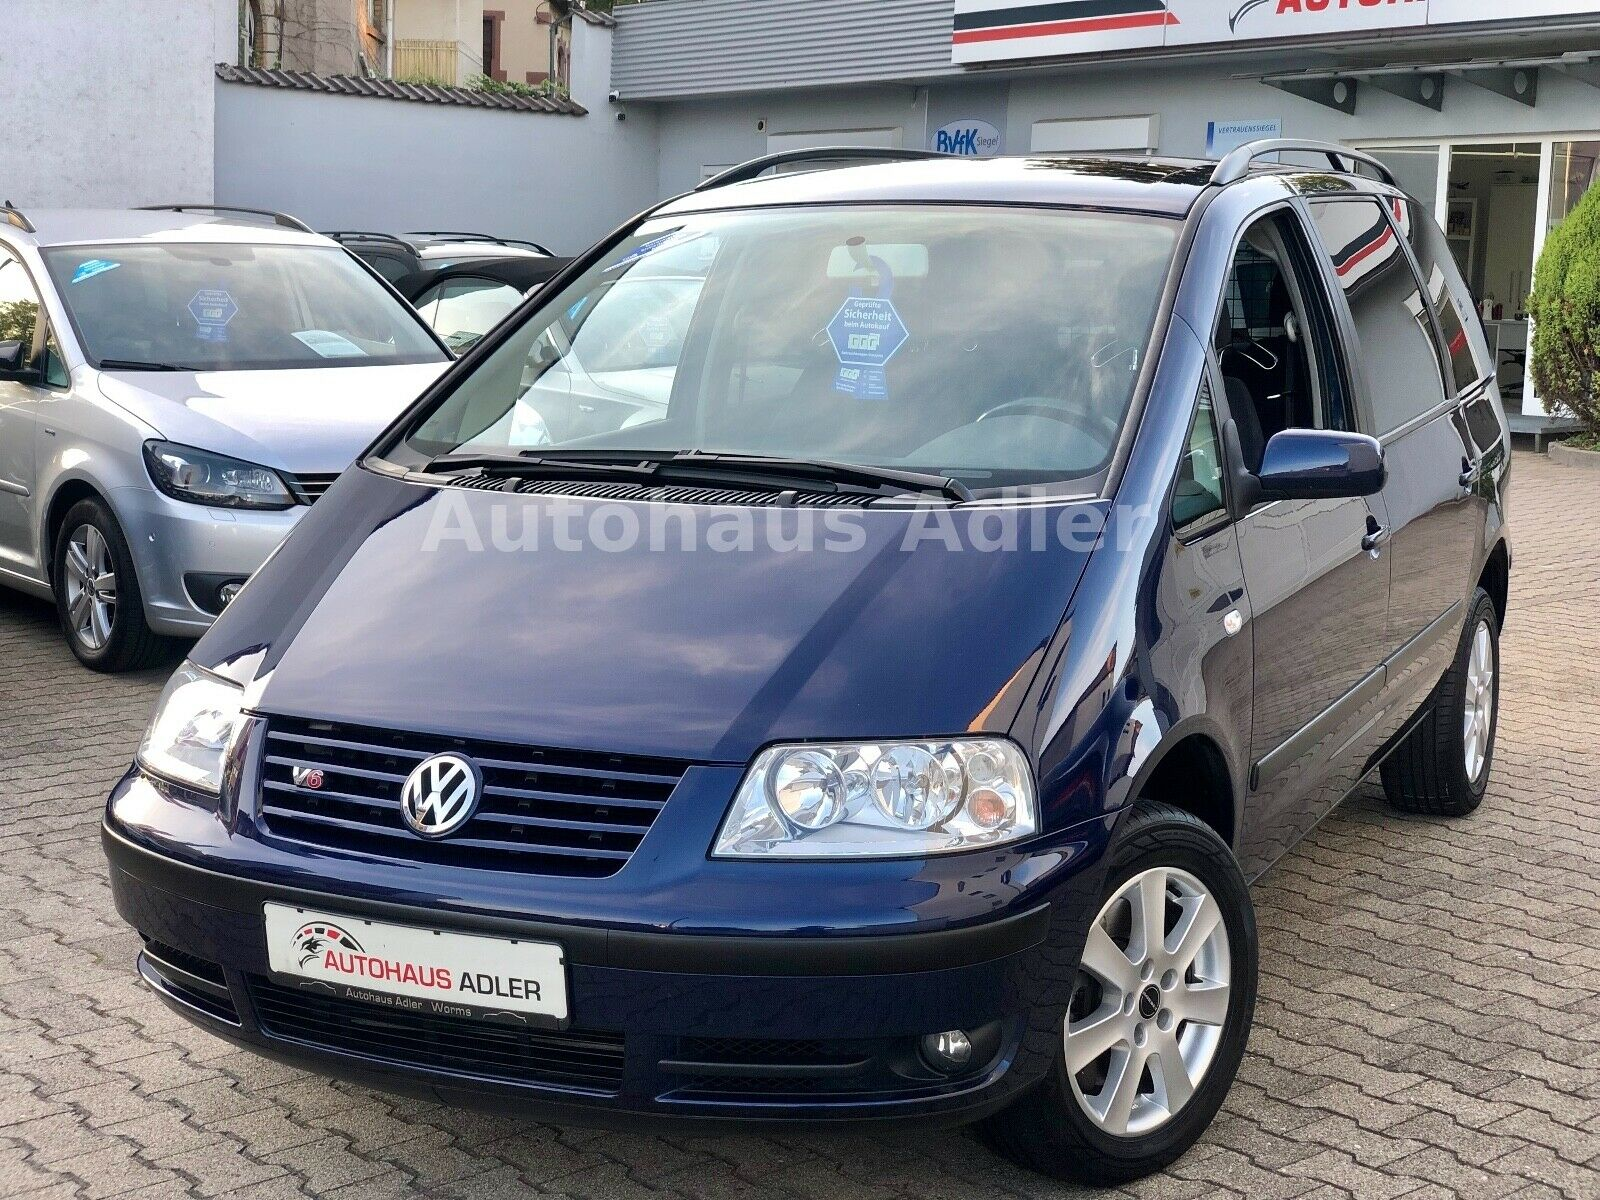 VW Sharan 2.8 V6 4motion*1Hd*Grnti*SteurkNEU*TüvNeu